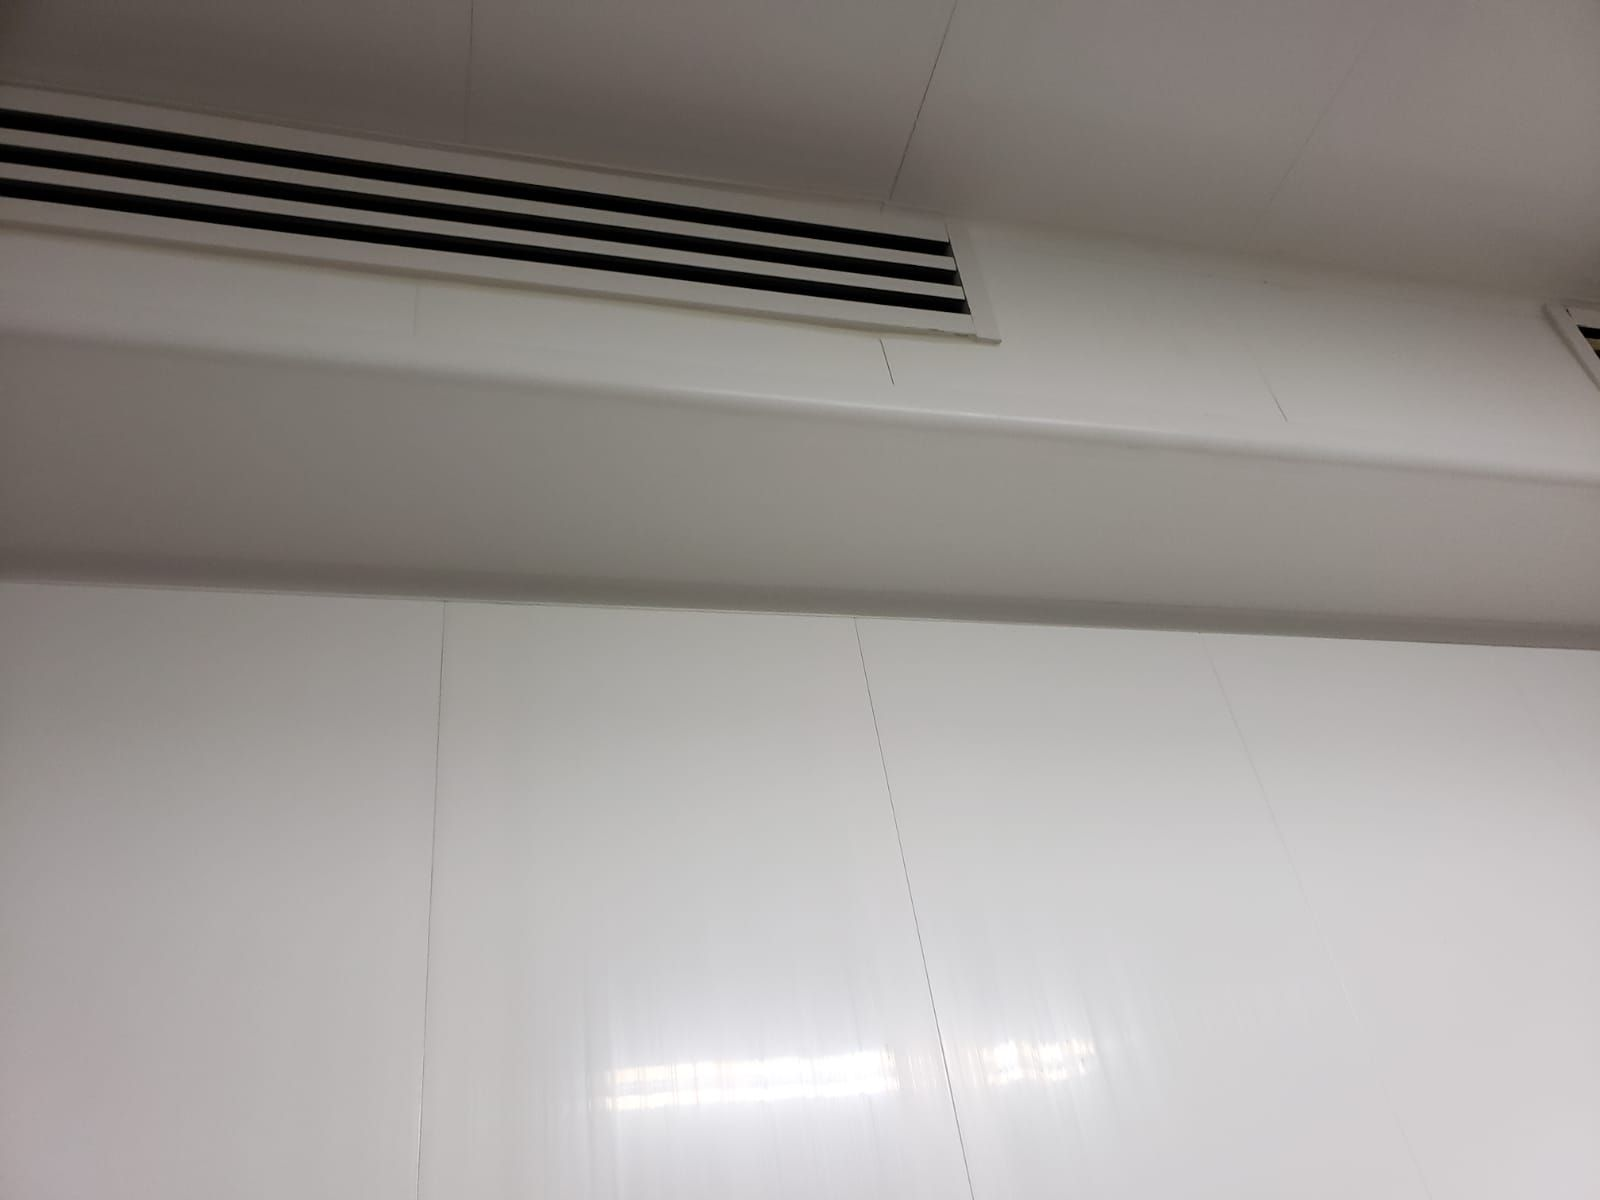 Get Your Own Pvc Wall Panels From Duramax Pvc Wall Panels Vinyl Panels Wall Panels